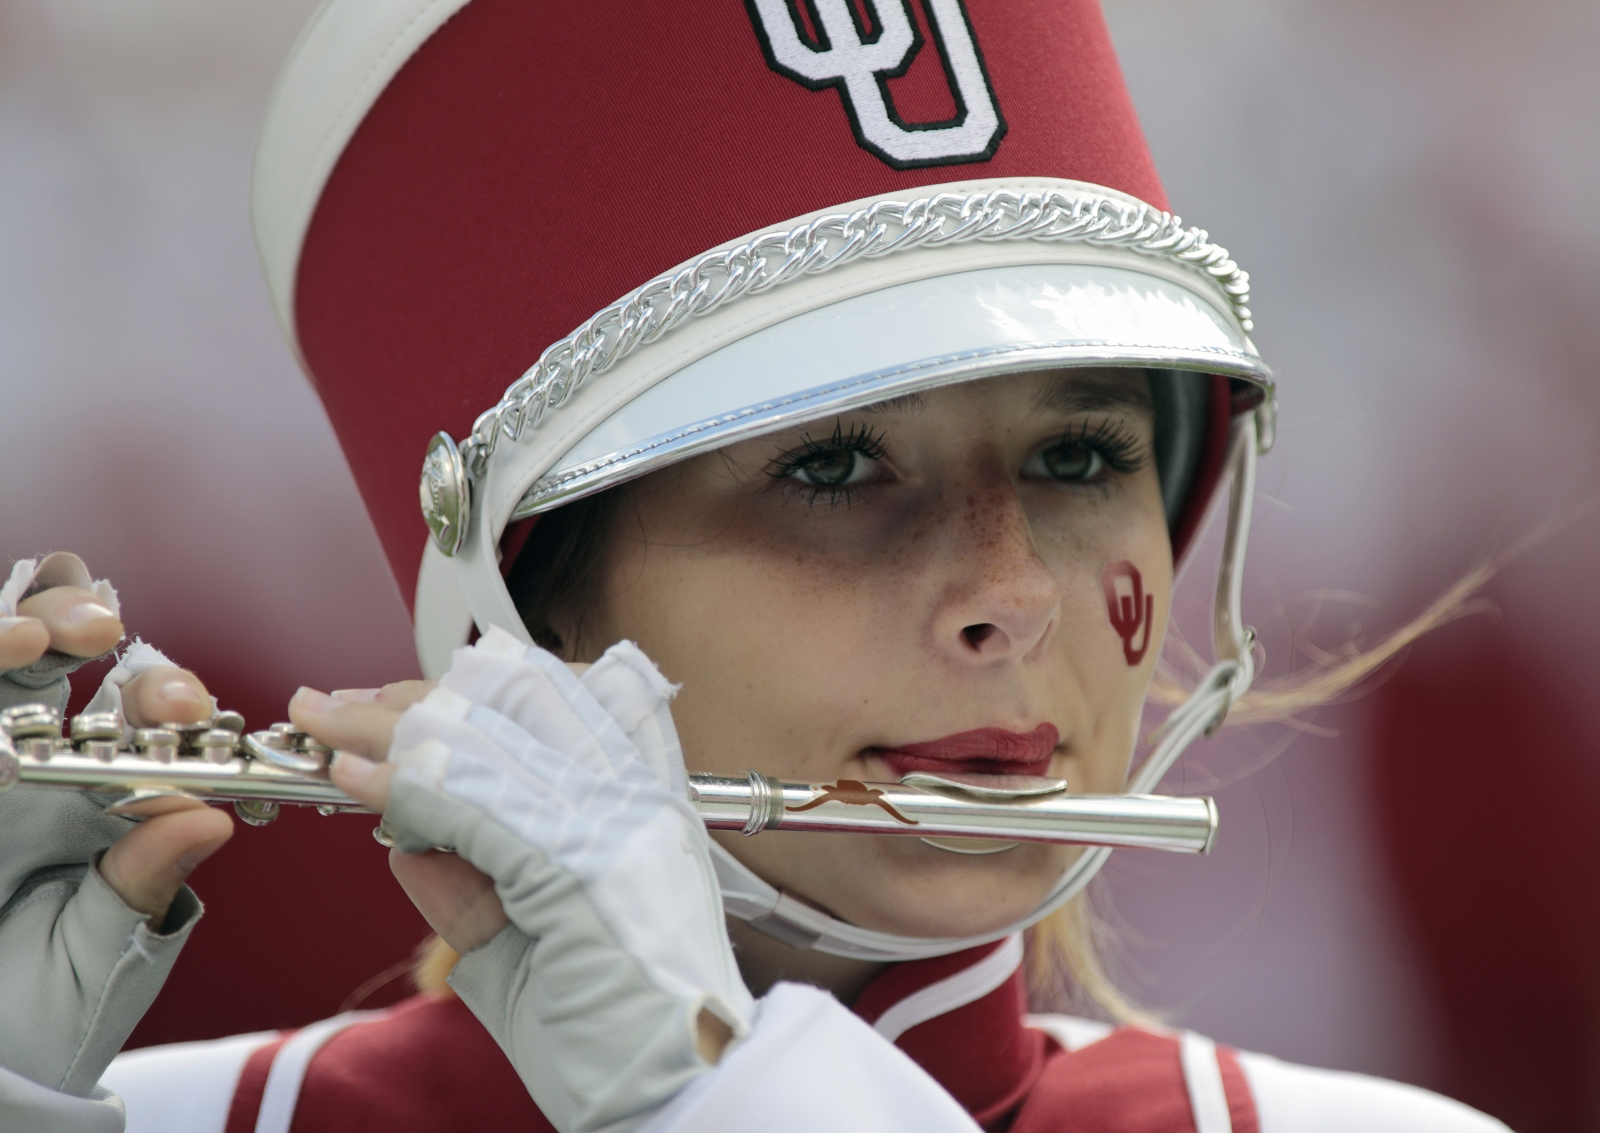 Oklahoma Sooners marching band